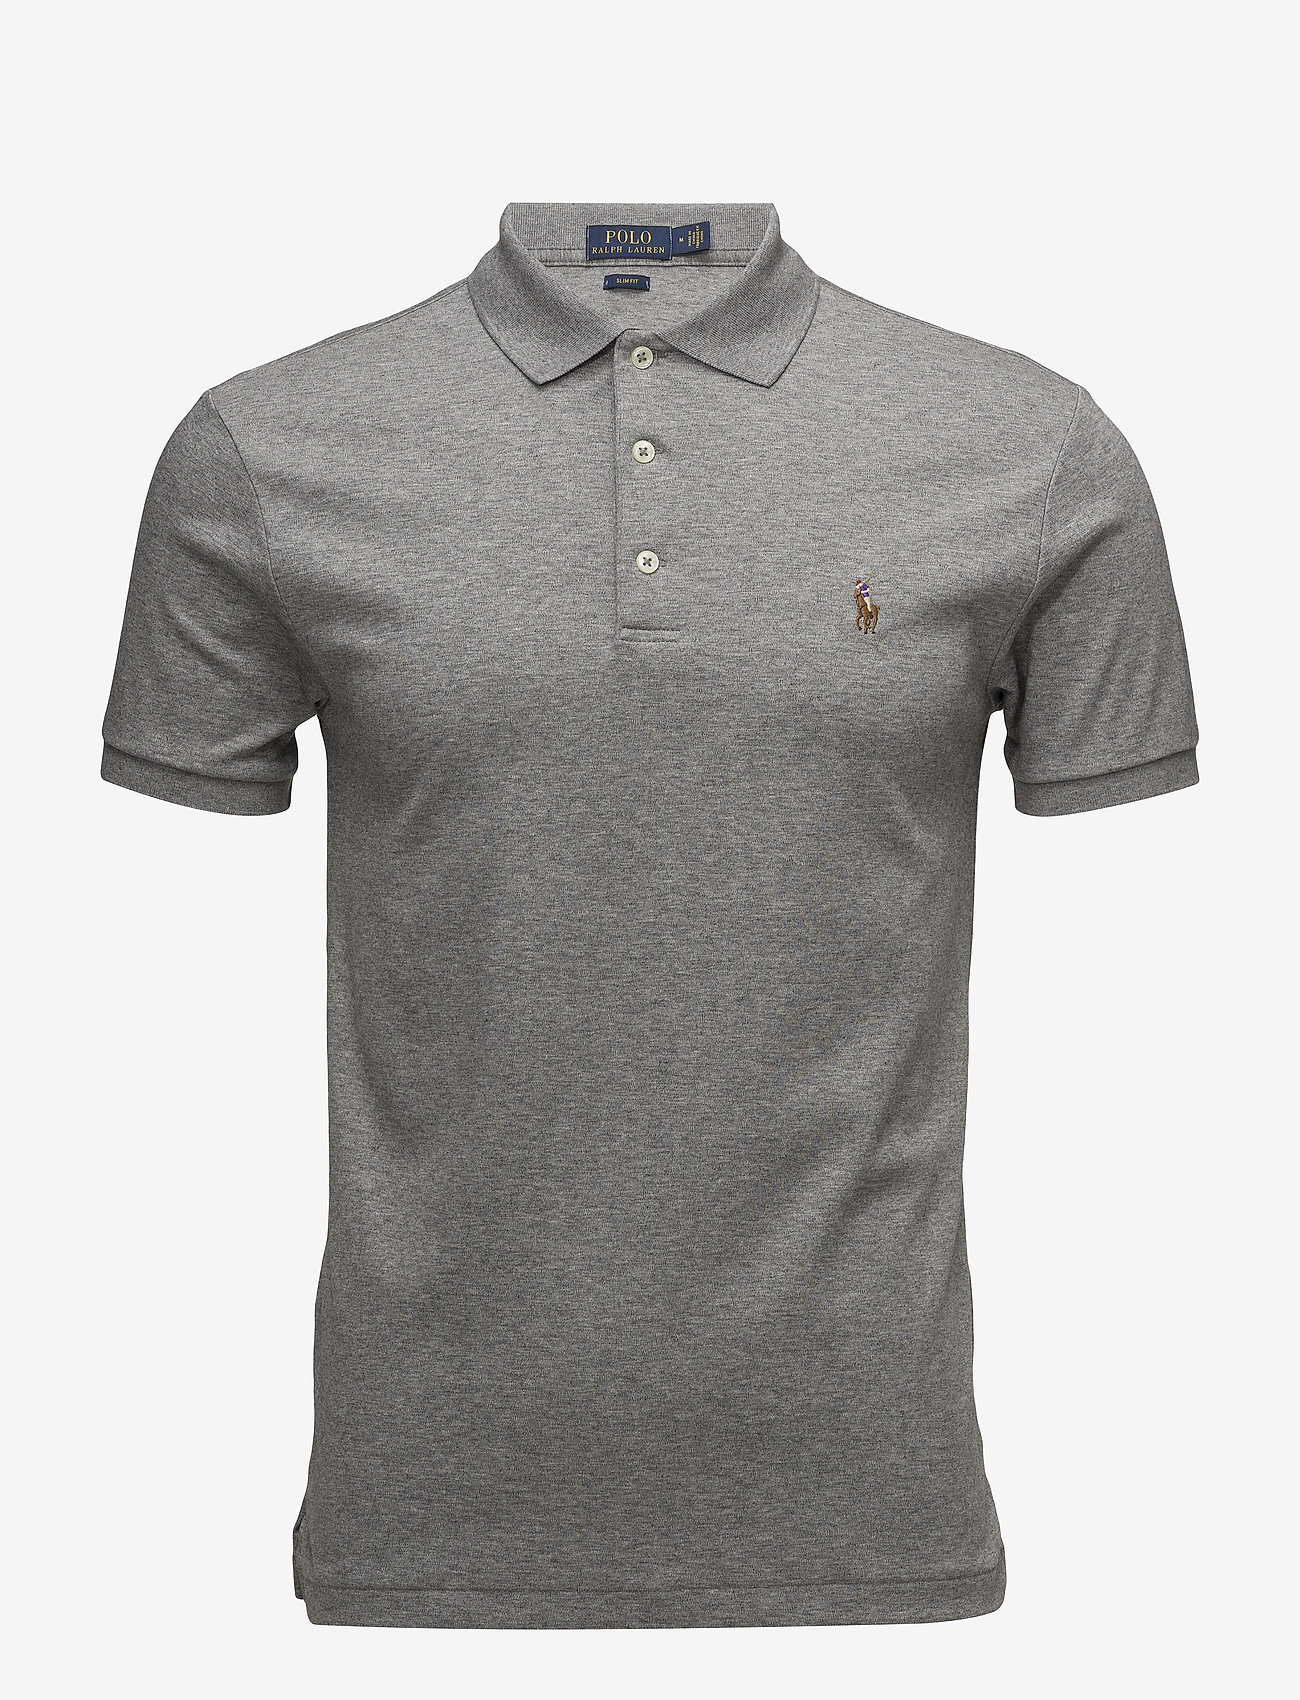 Slim Fit Soft-touch Polo Shirt (Steel Heather) - Polo Ralph Lauren LldXtR